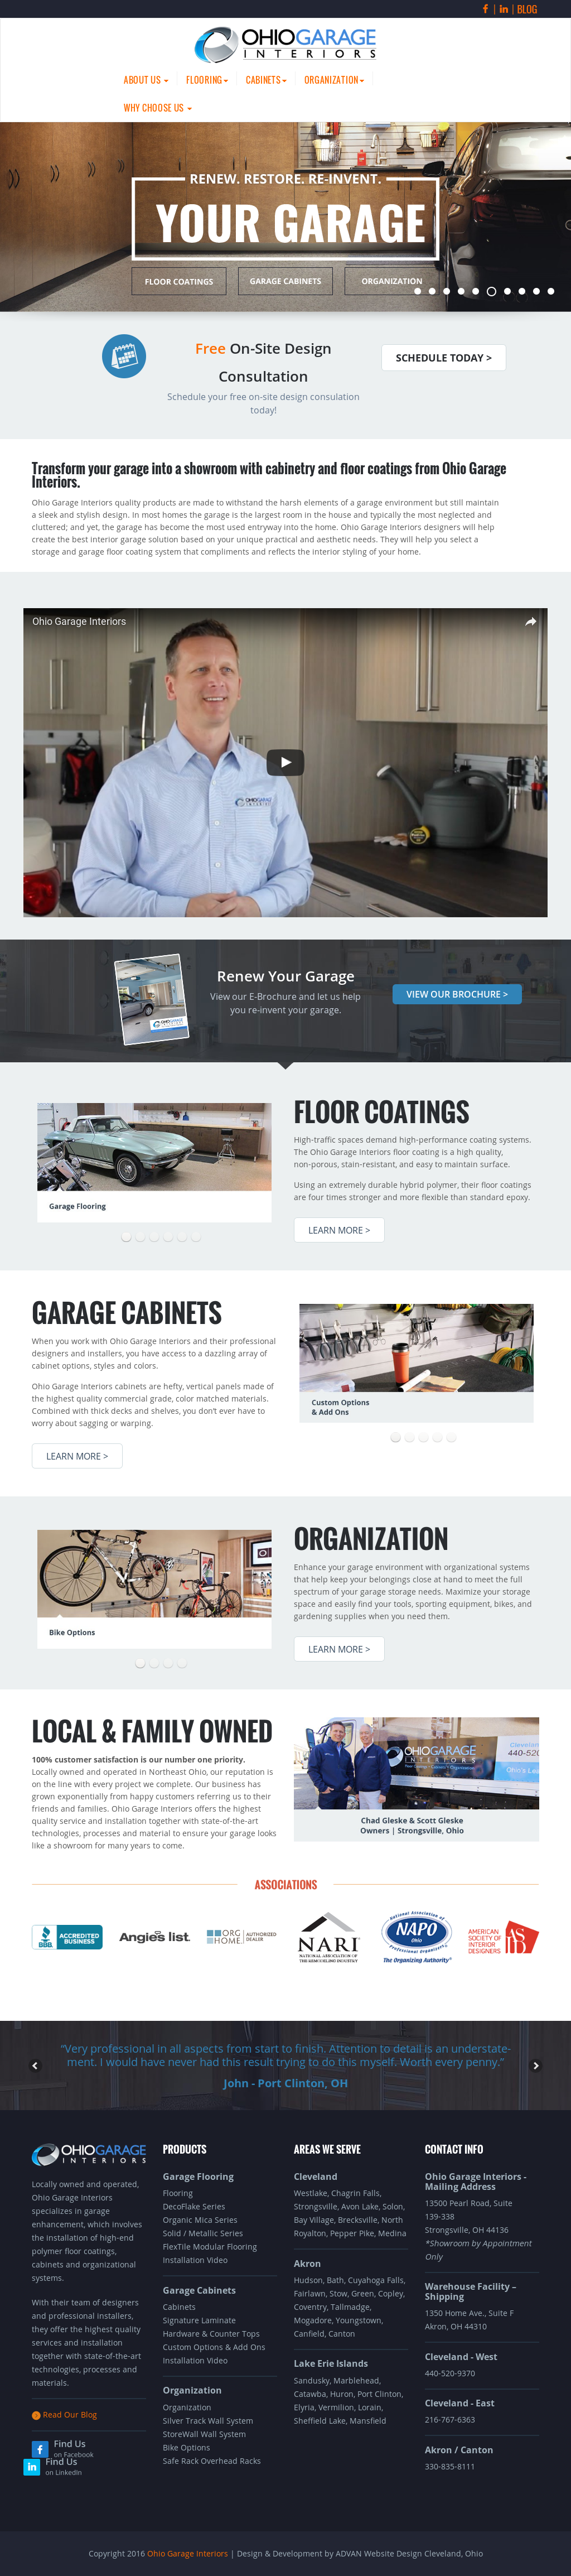 Ohio Garage Interiors Competitors, Revenue and Employees - Owler Company Profile